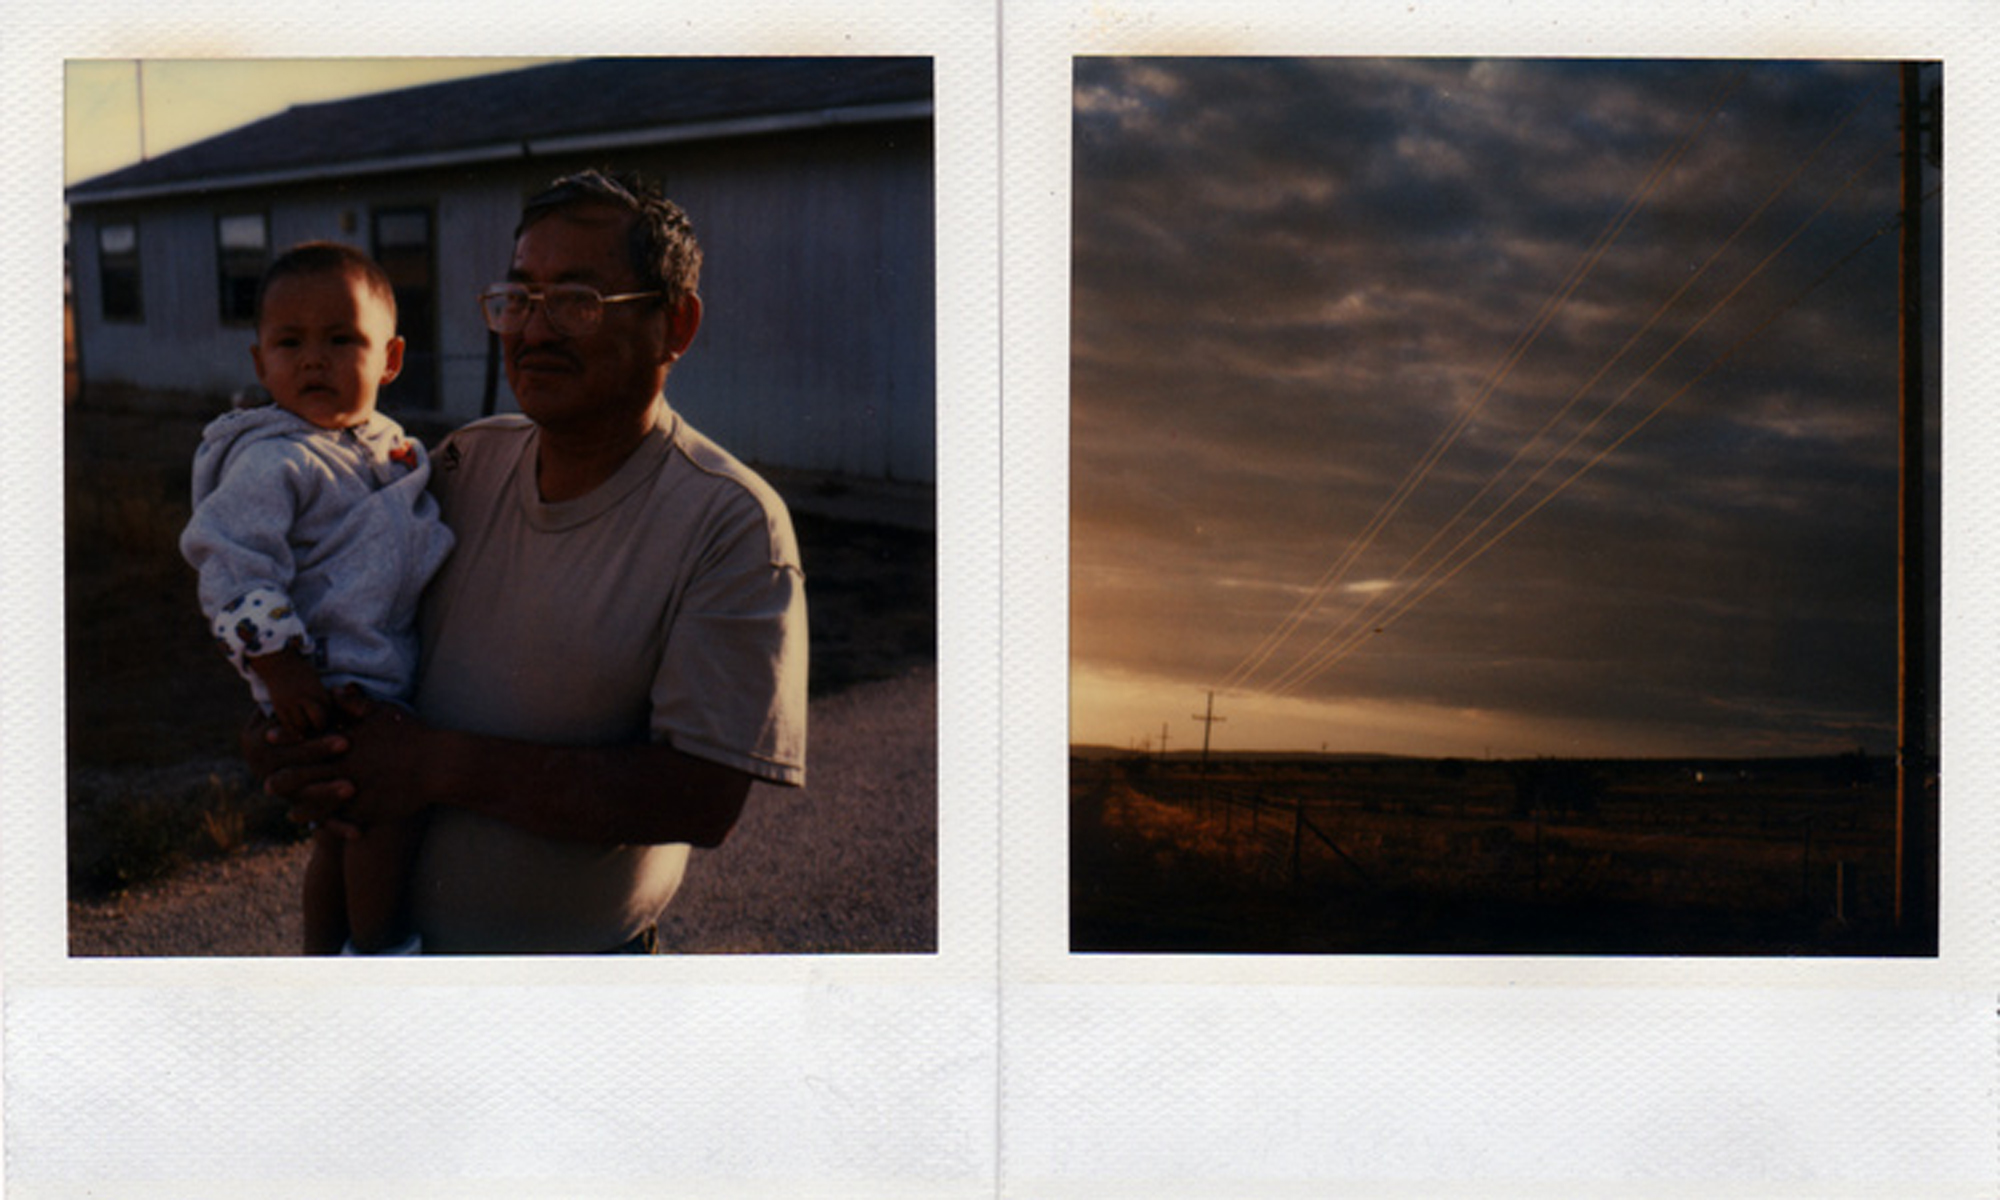 Will Martinez with his grandson, Navajo Indian, Pine Ridge, New Mexico, 2004 (left); Sunset, Pine Ridge, New Mexico, 2004 (right).